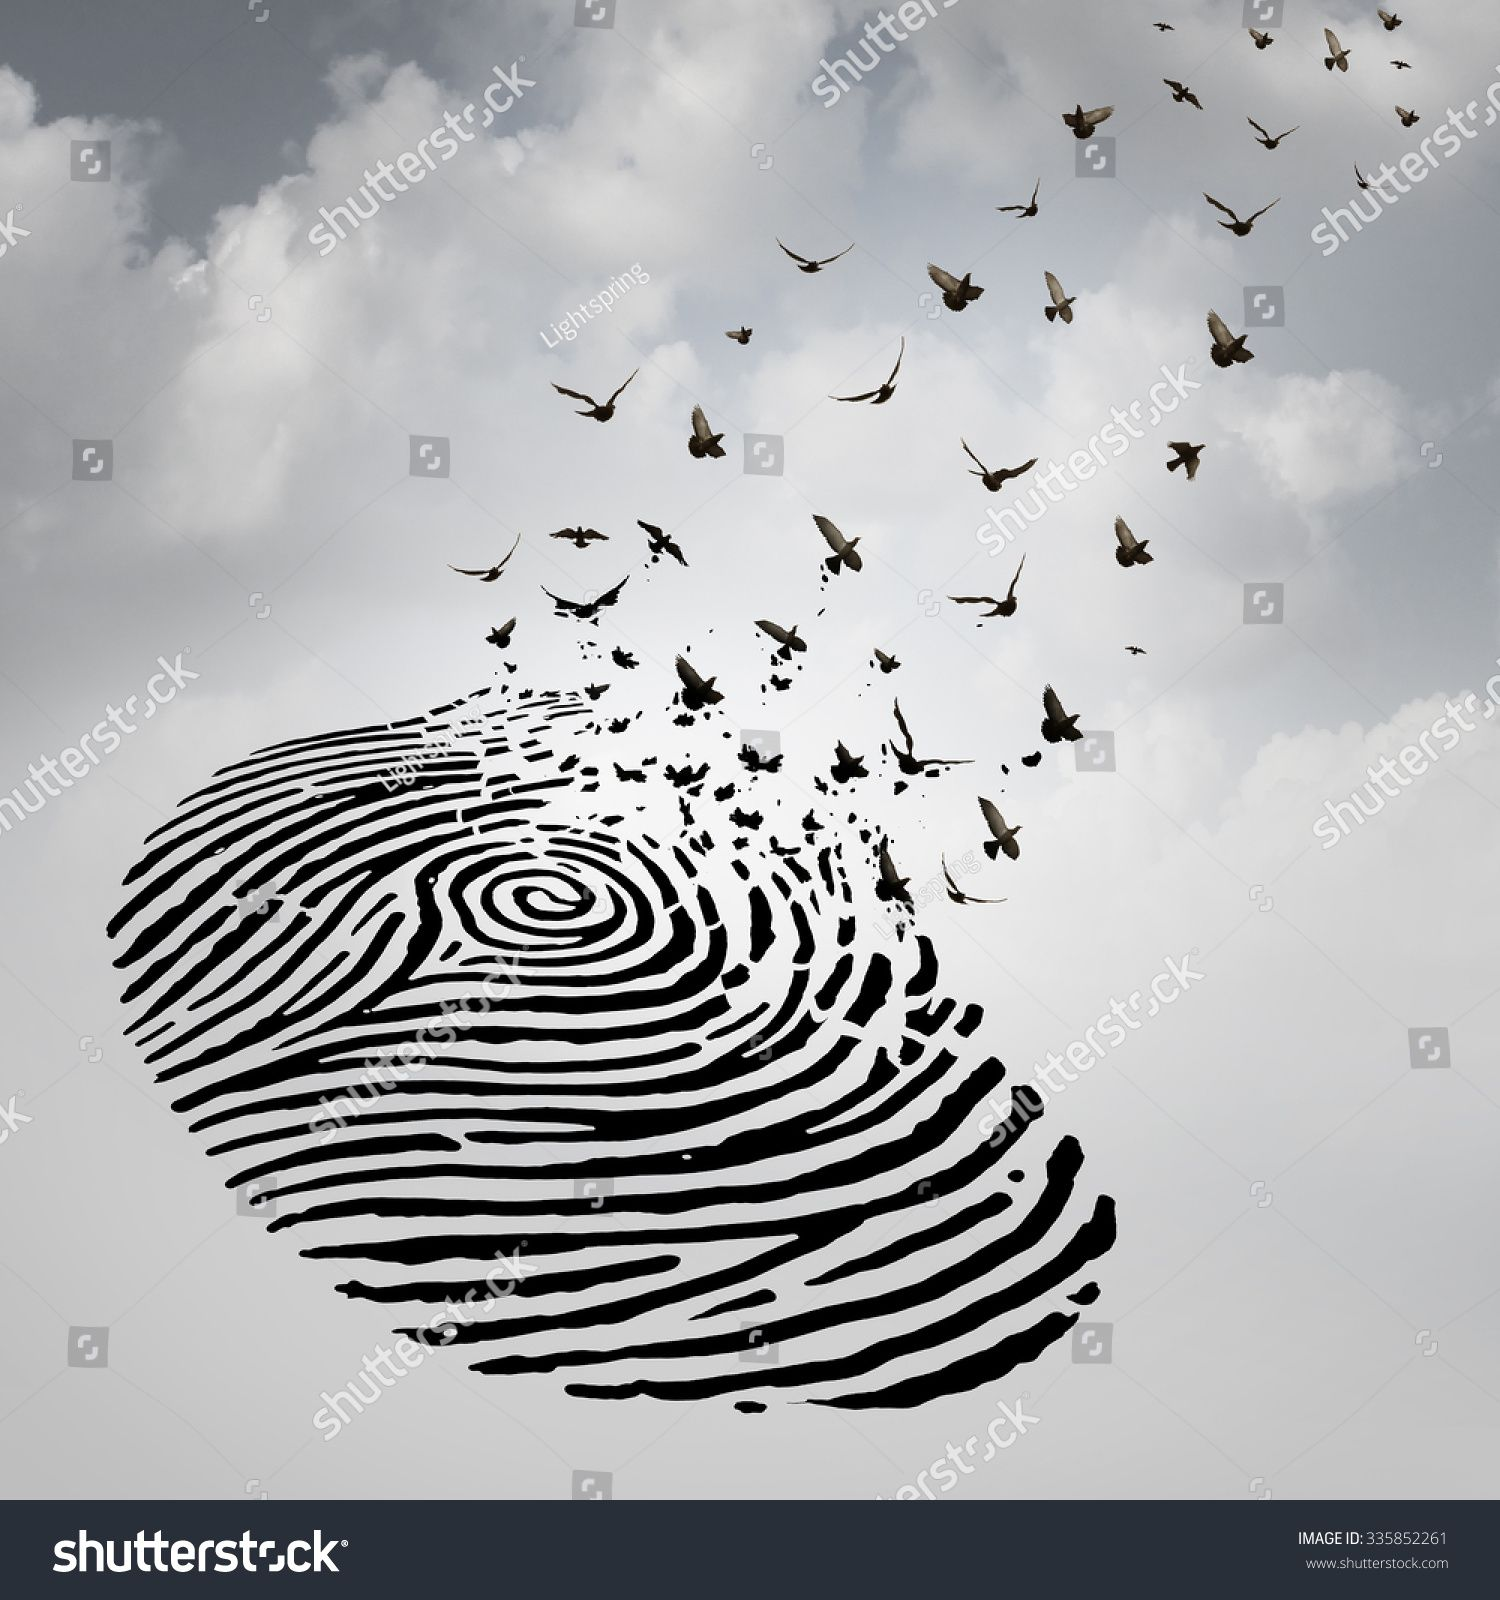 Identity freedom concept as a fingerprint transforming into flying transforming into flying birds as a metaphor for a person losing a psychological identity or a symbol of death and renewal after a loss of a loved one biocorpaavc Image collections